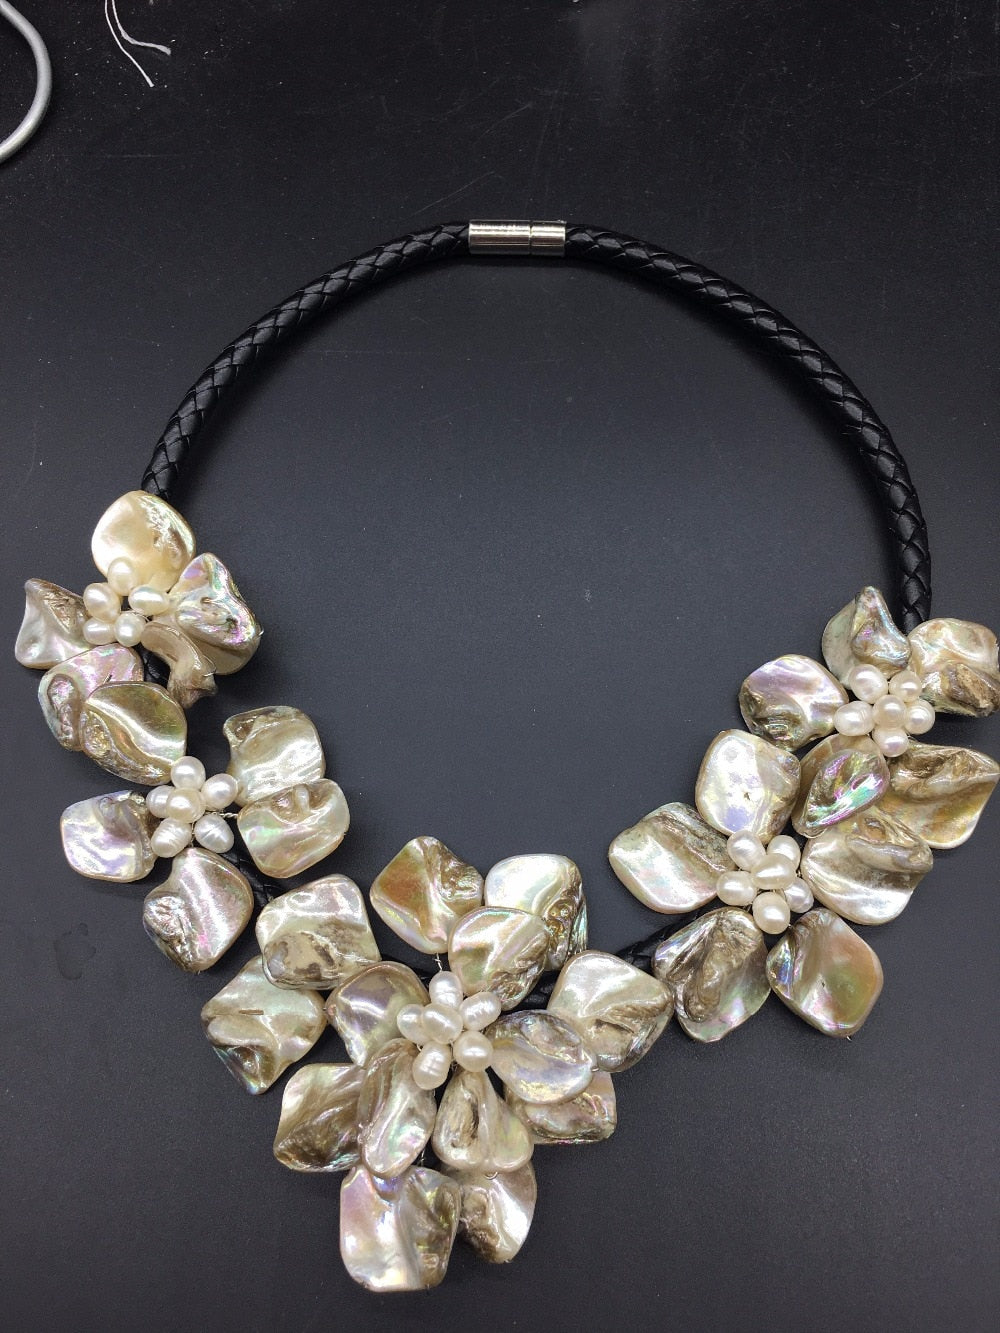 LJHMY Natural White Freshwater Cultured Pearl Shell Flower Necklace For Women Statement Choker Pendant Necklace-geekbuyig